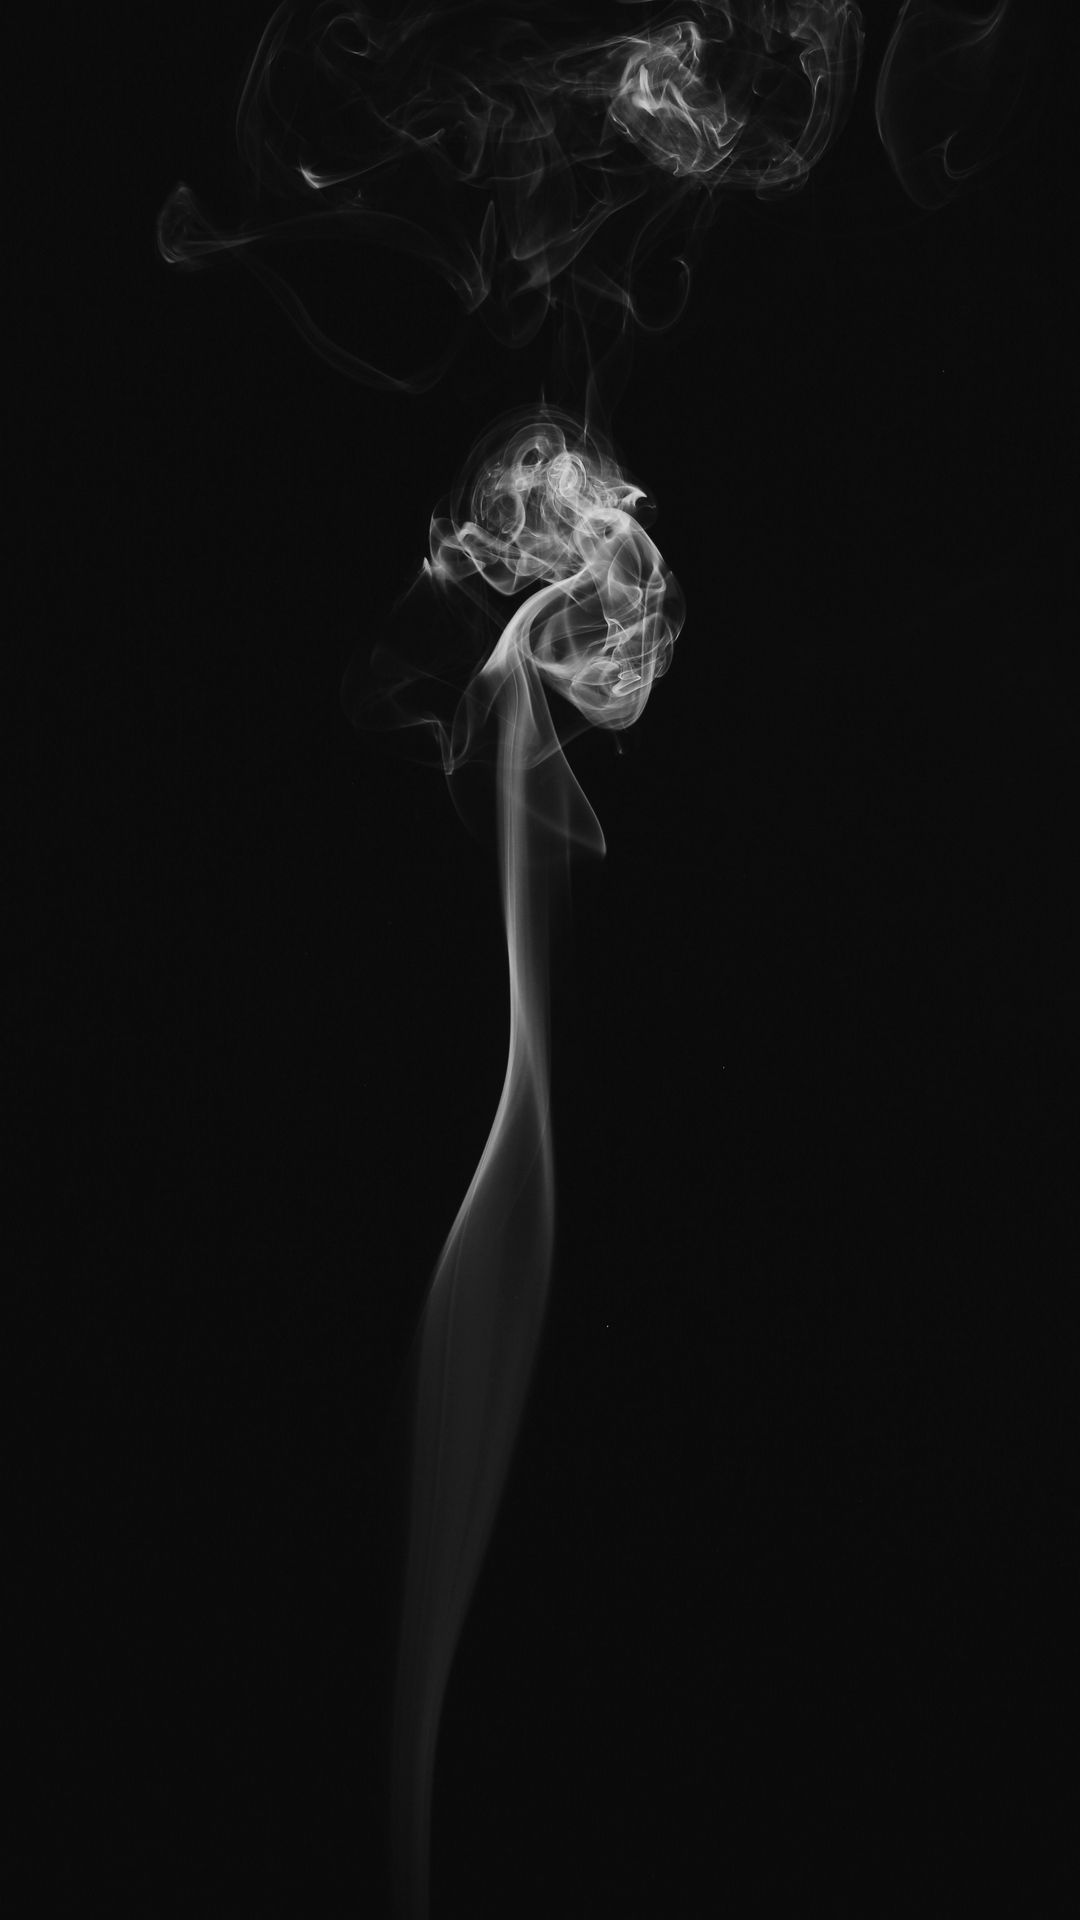 For Iphone App Search For Socihoro On App Store Clots Bw Smoke Abstract Wallpaper Lockscreen Mo Smoke Wallpaper Armband Tattoo Design Smoke Pictures